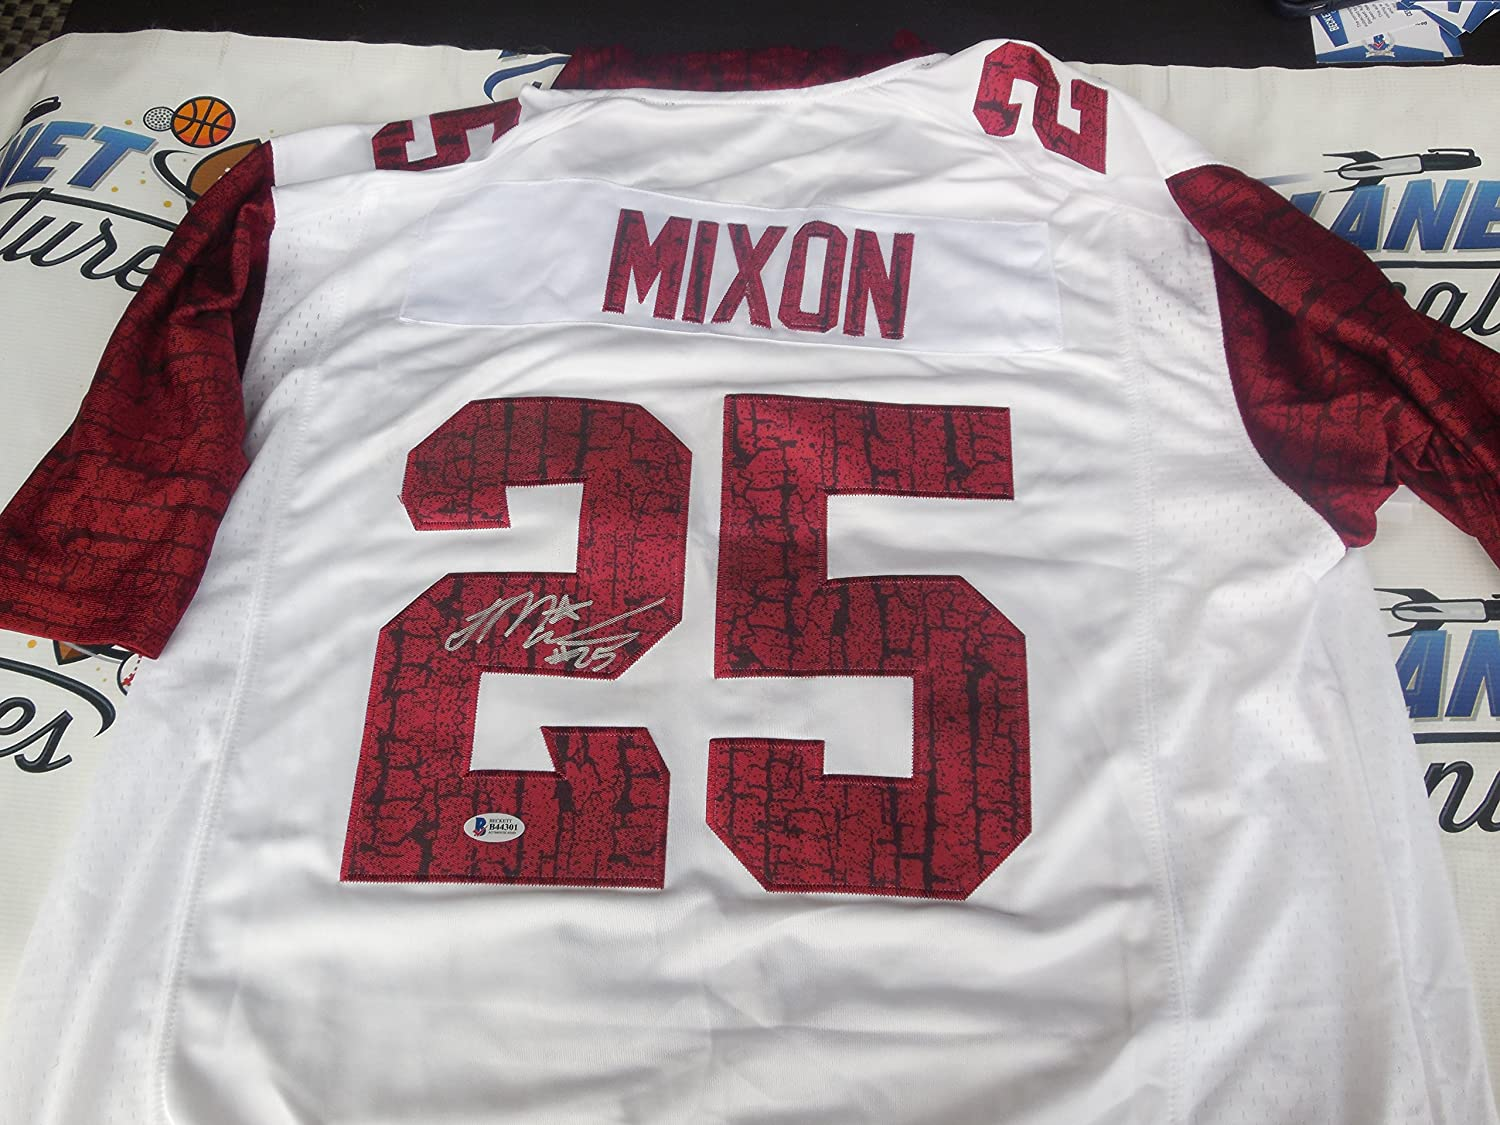 Joe Mixon Signed Oklahoma OU Sooners Bring the Wood Jersey Beckett BAS COA  at Amazons Sports  Joe Mixon Cincinnati Bengals ... 719e49c5a